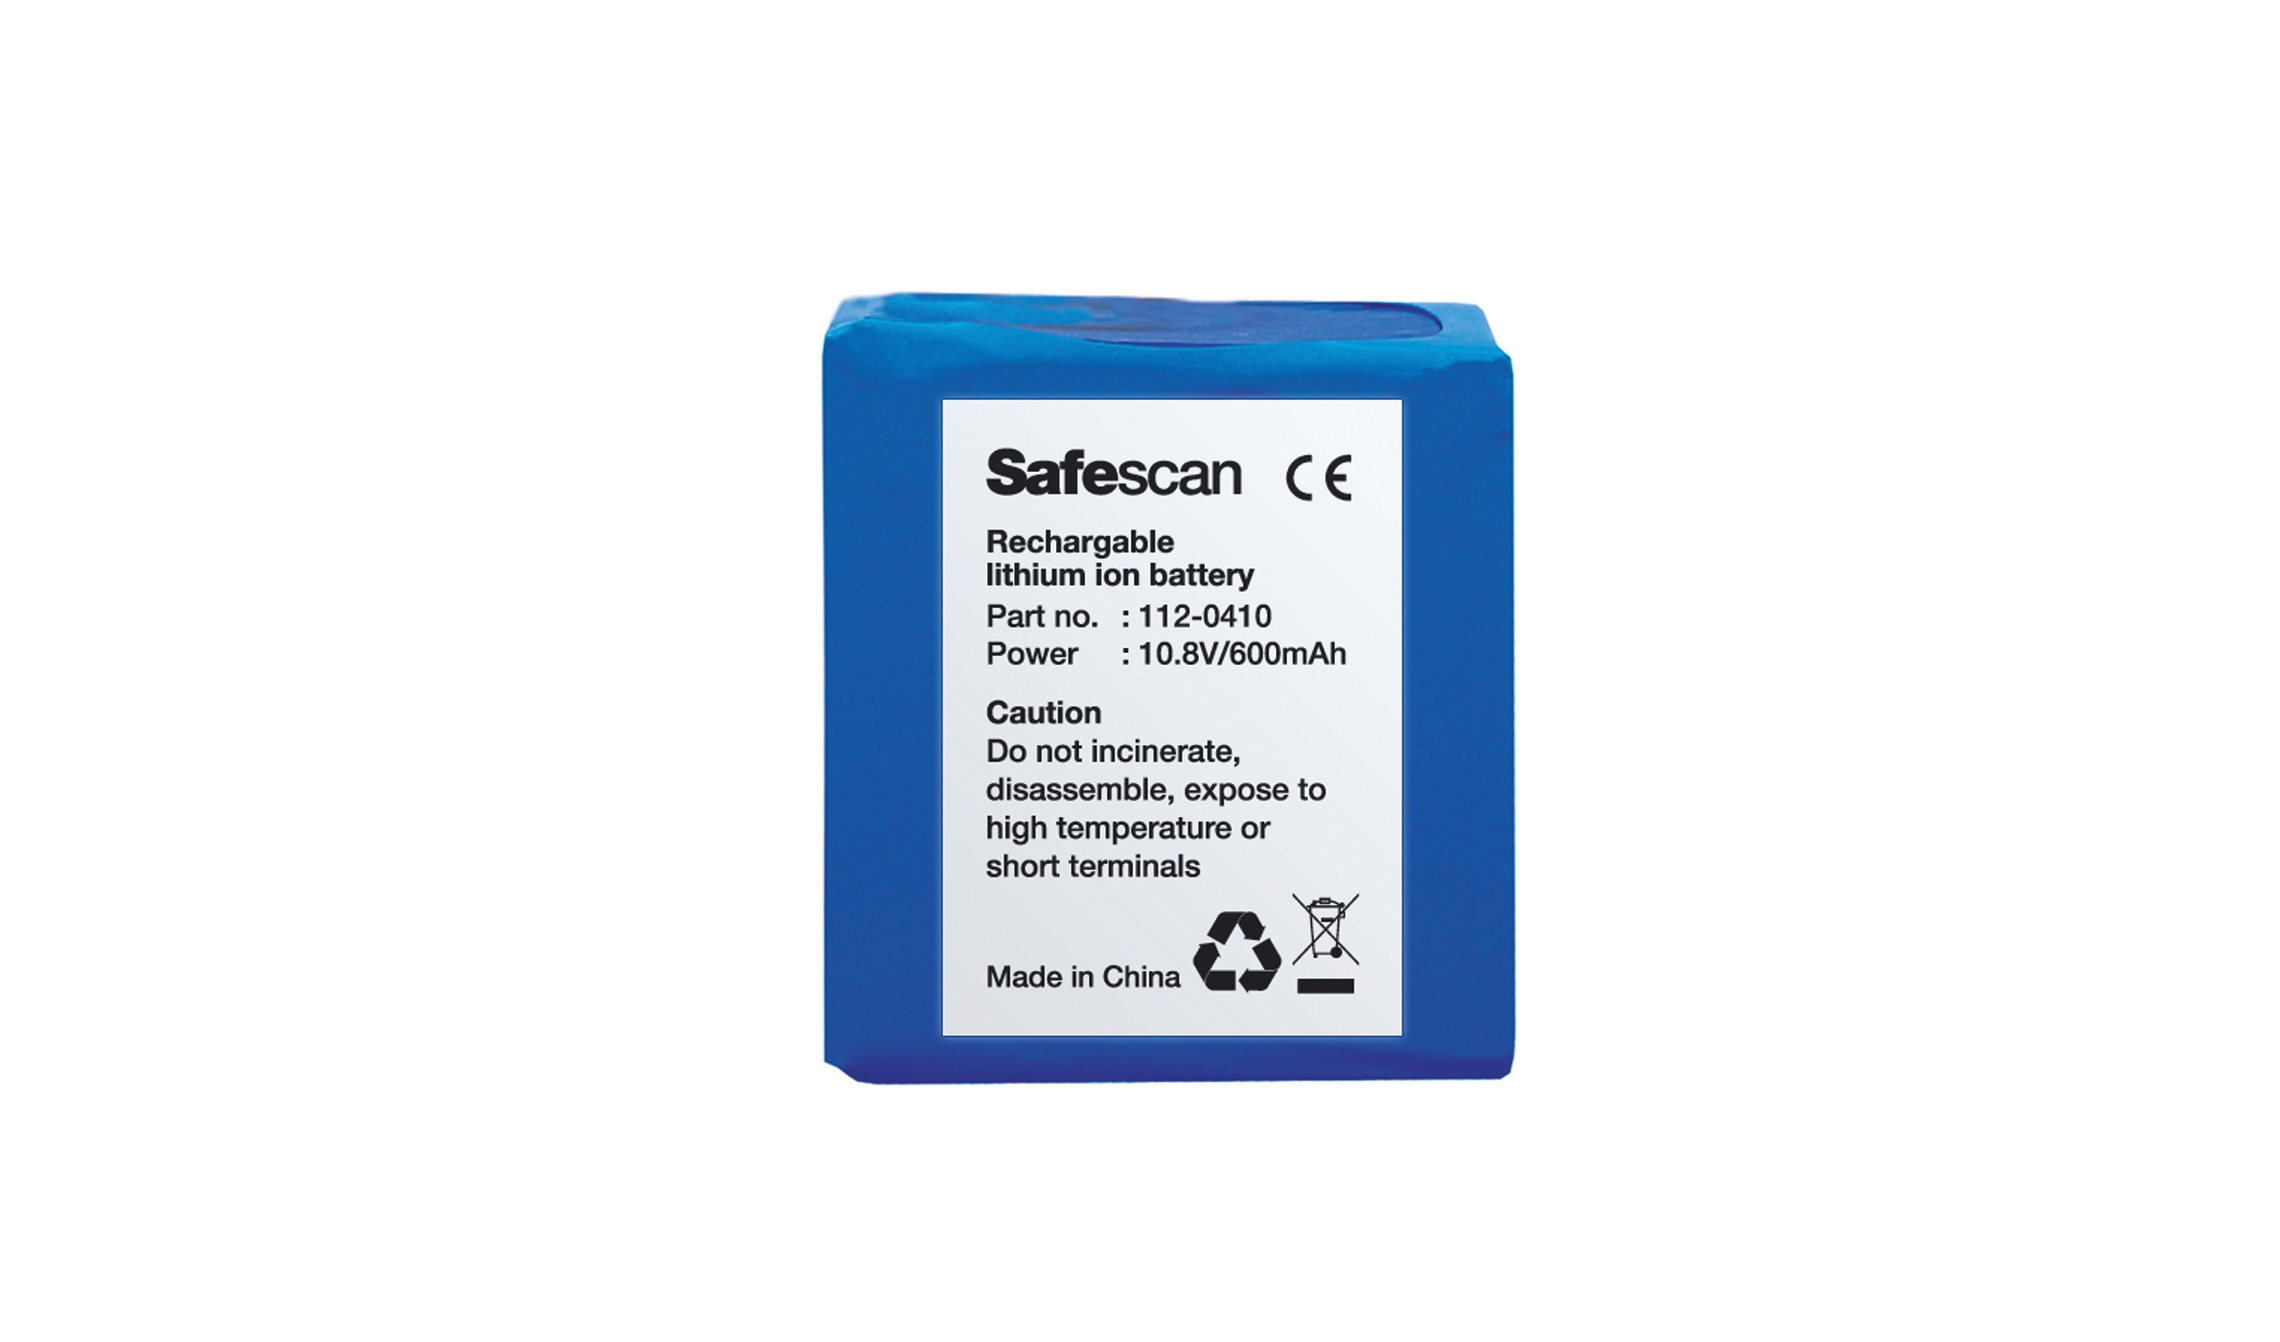 safescan-lb-105-rechargable-battery